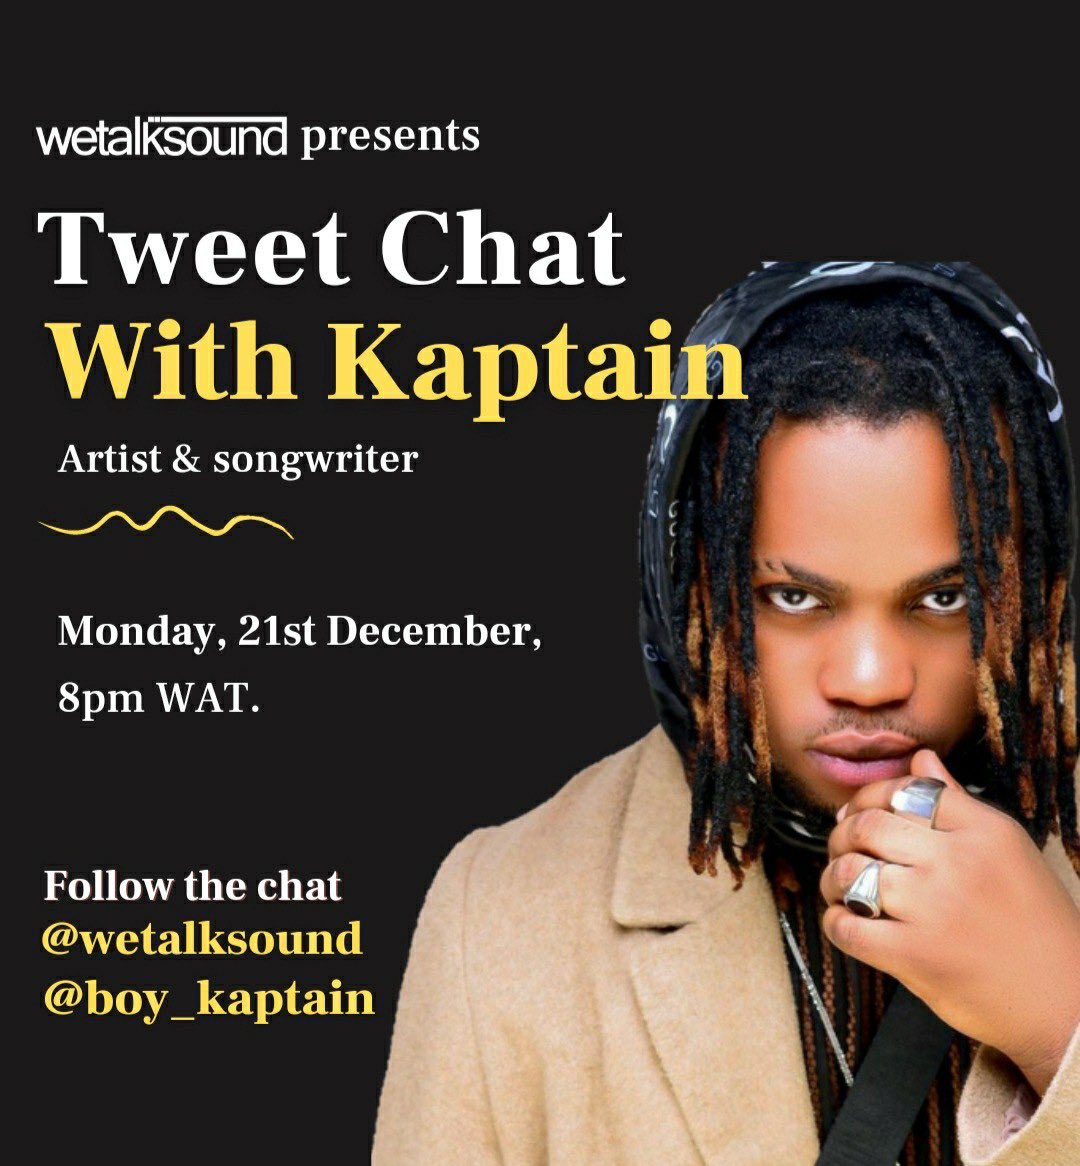 Let's gist: Kaptain's love ship- the EP.